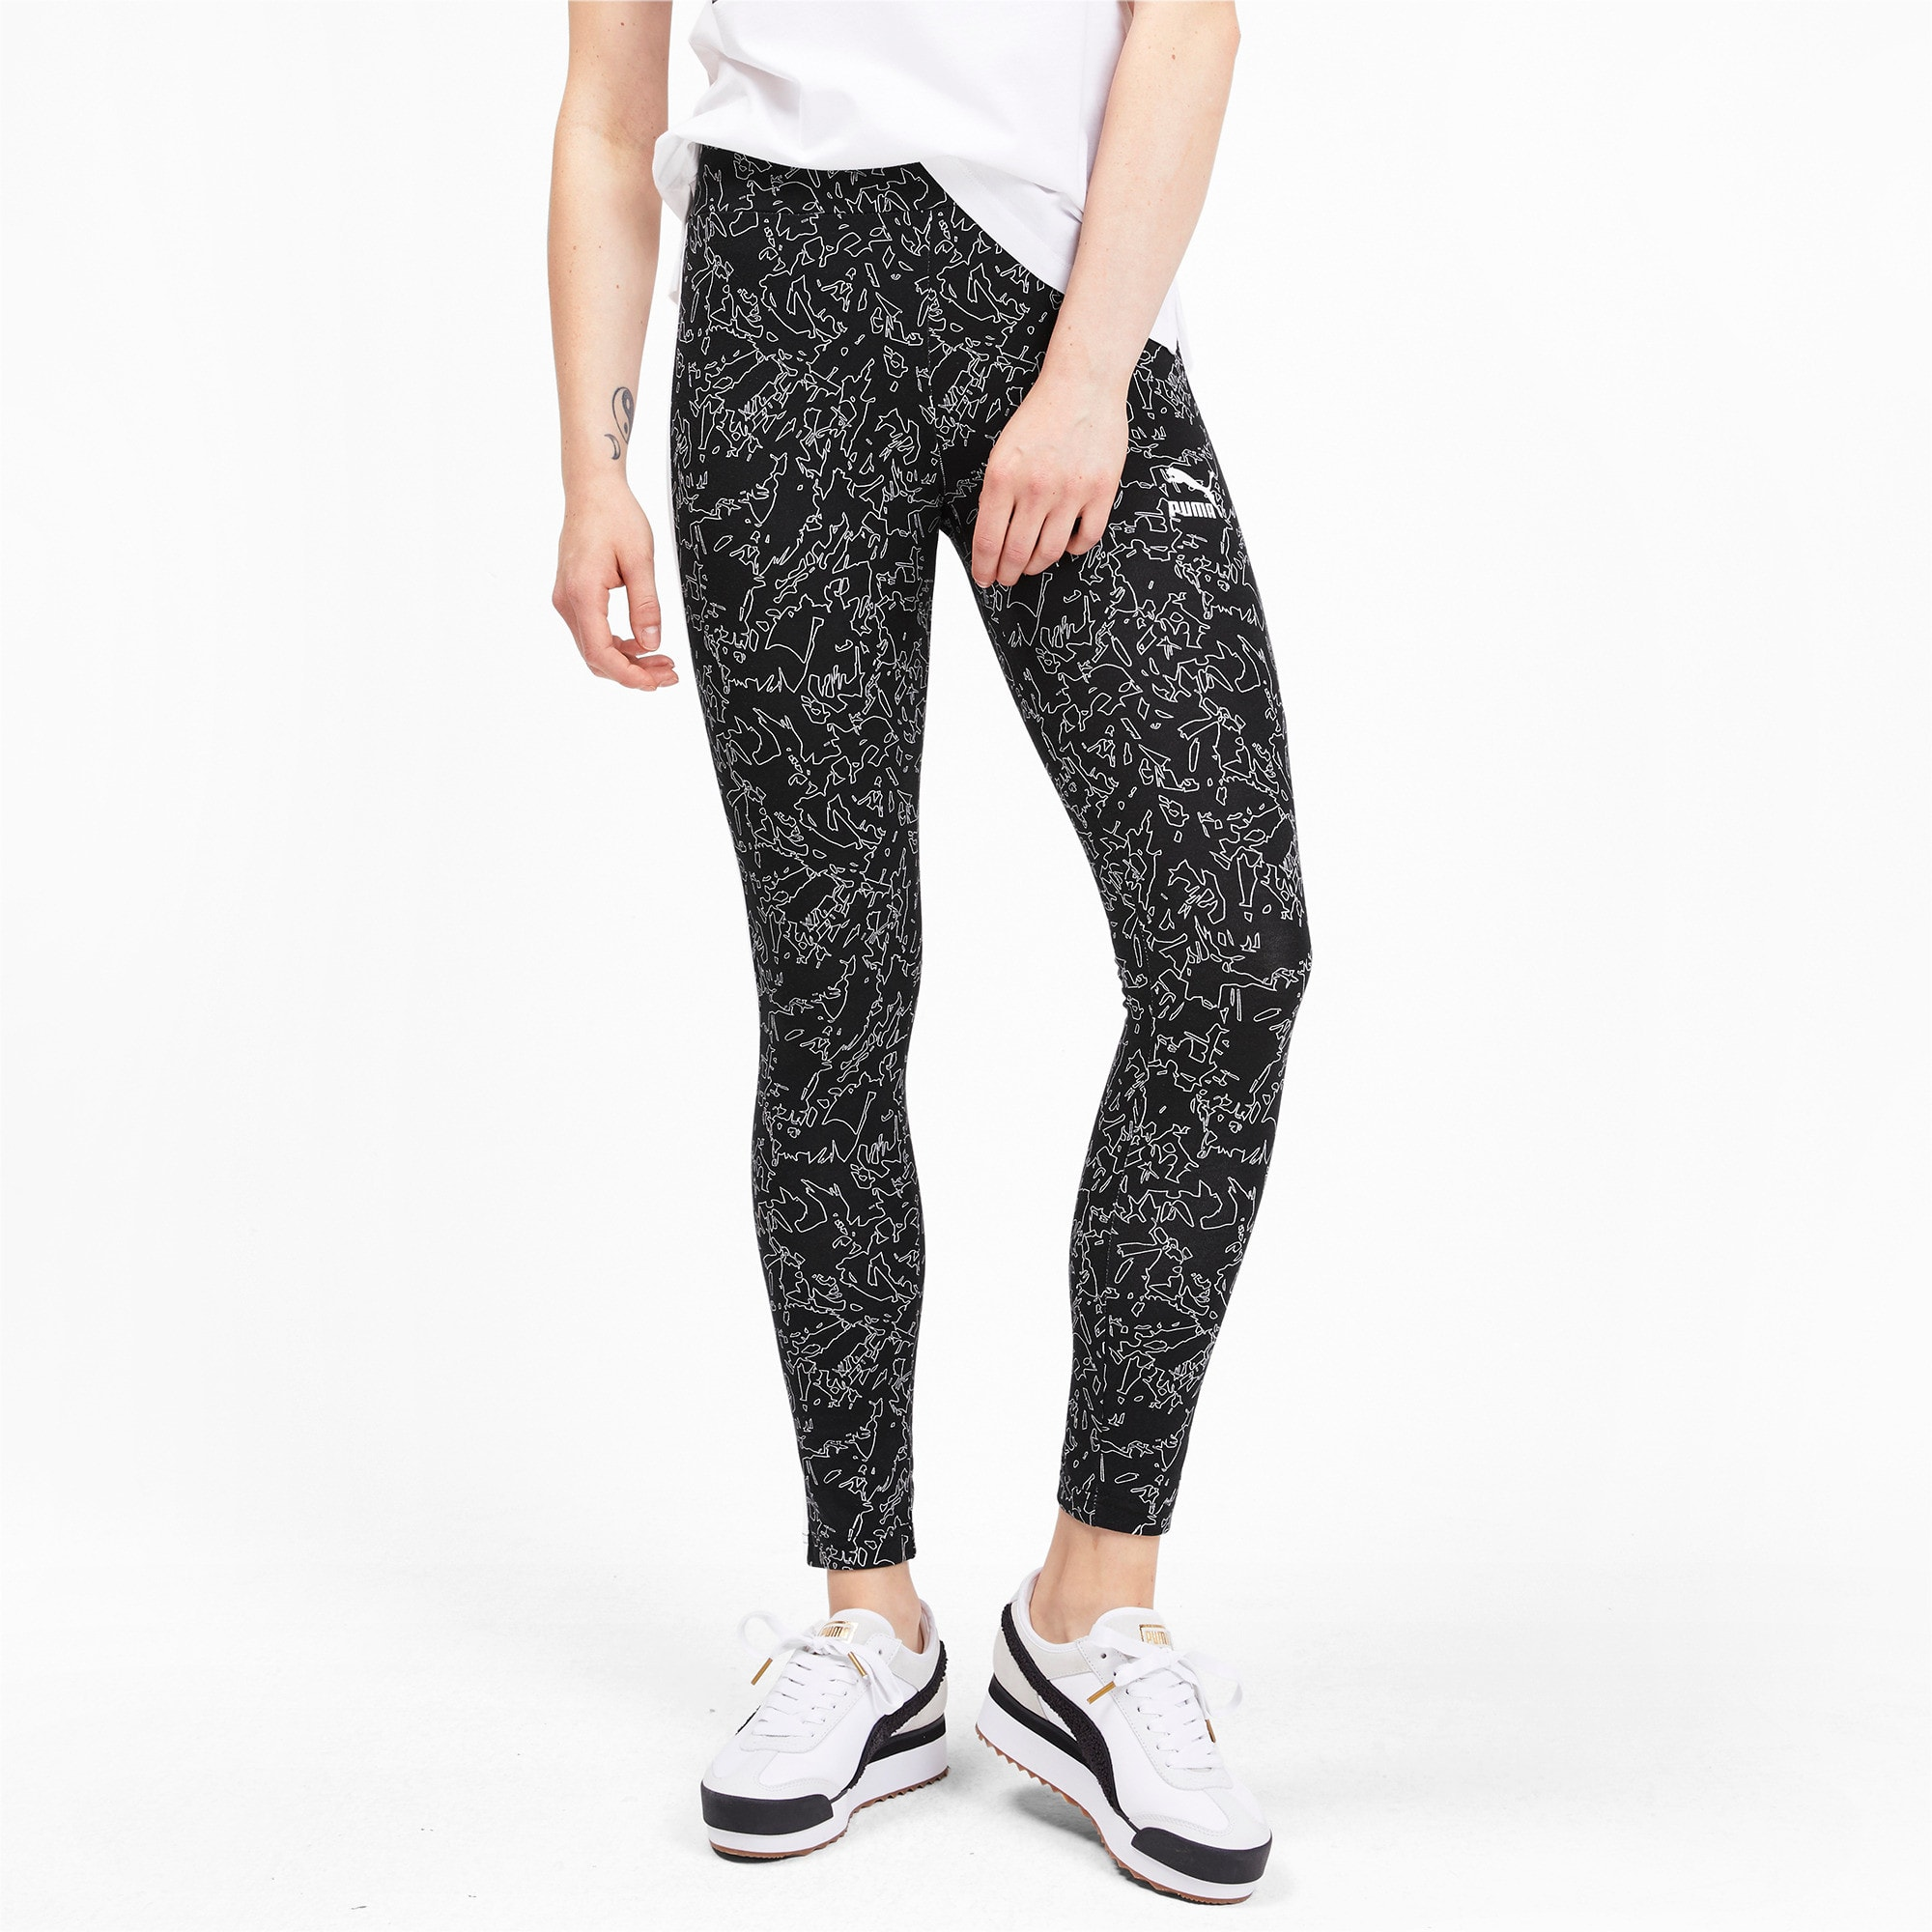 Thumbnail 1 of Classics T7 Women's Leggings, Puma Black, medium